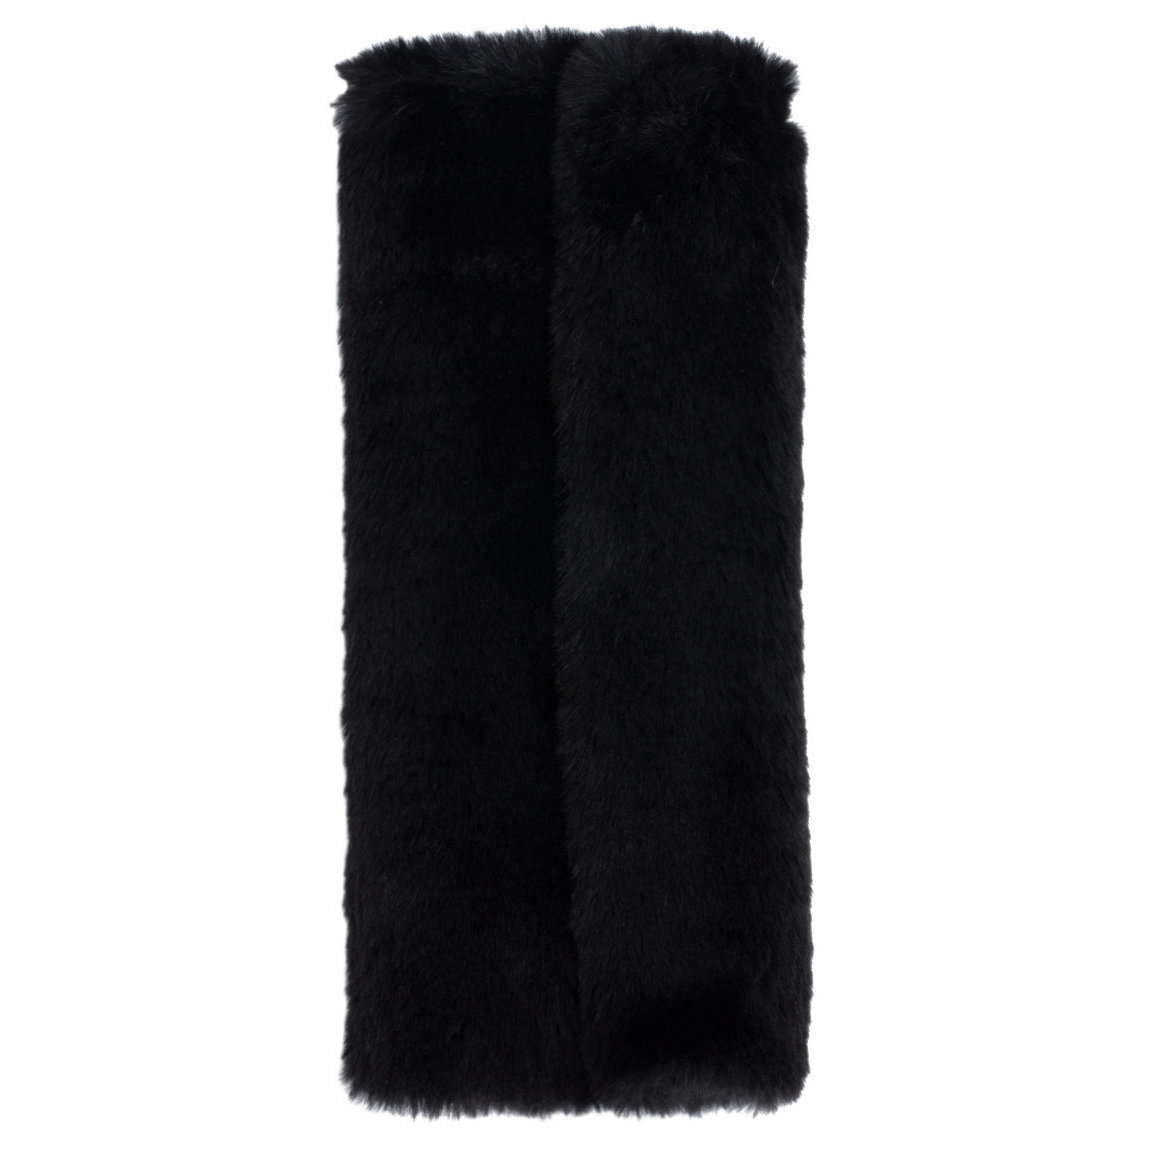 Beautylish Presents Faux Fur Brush Roll Black product swatch.